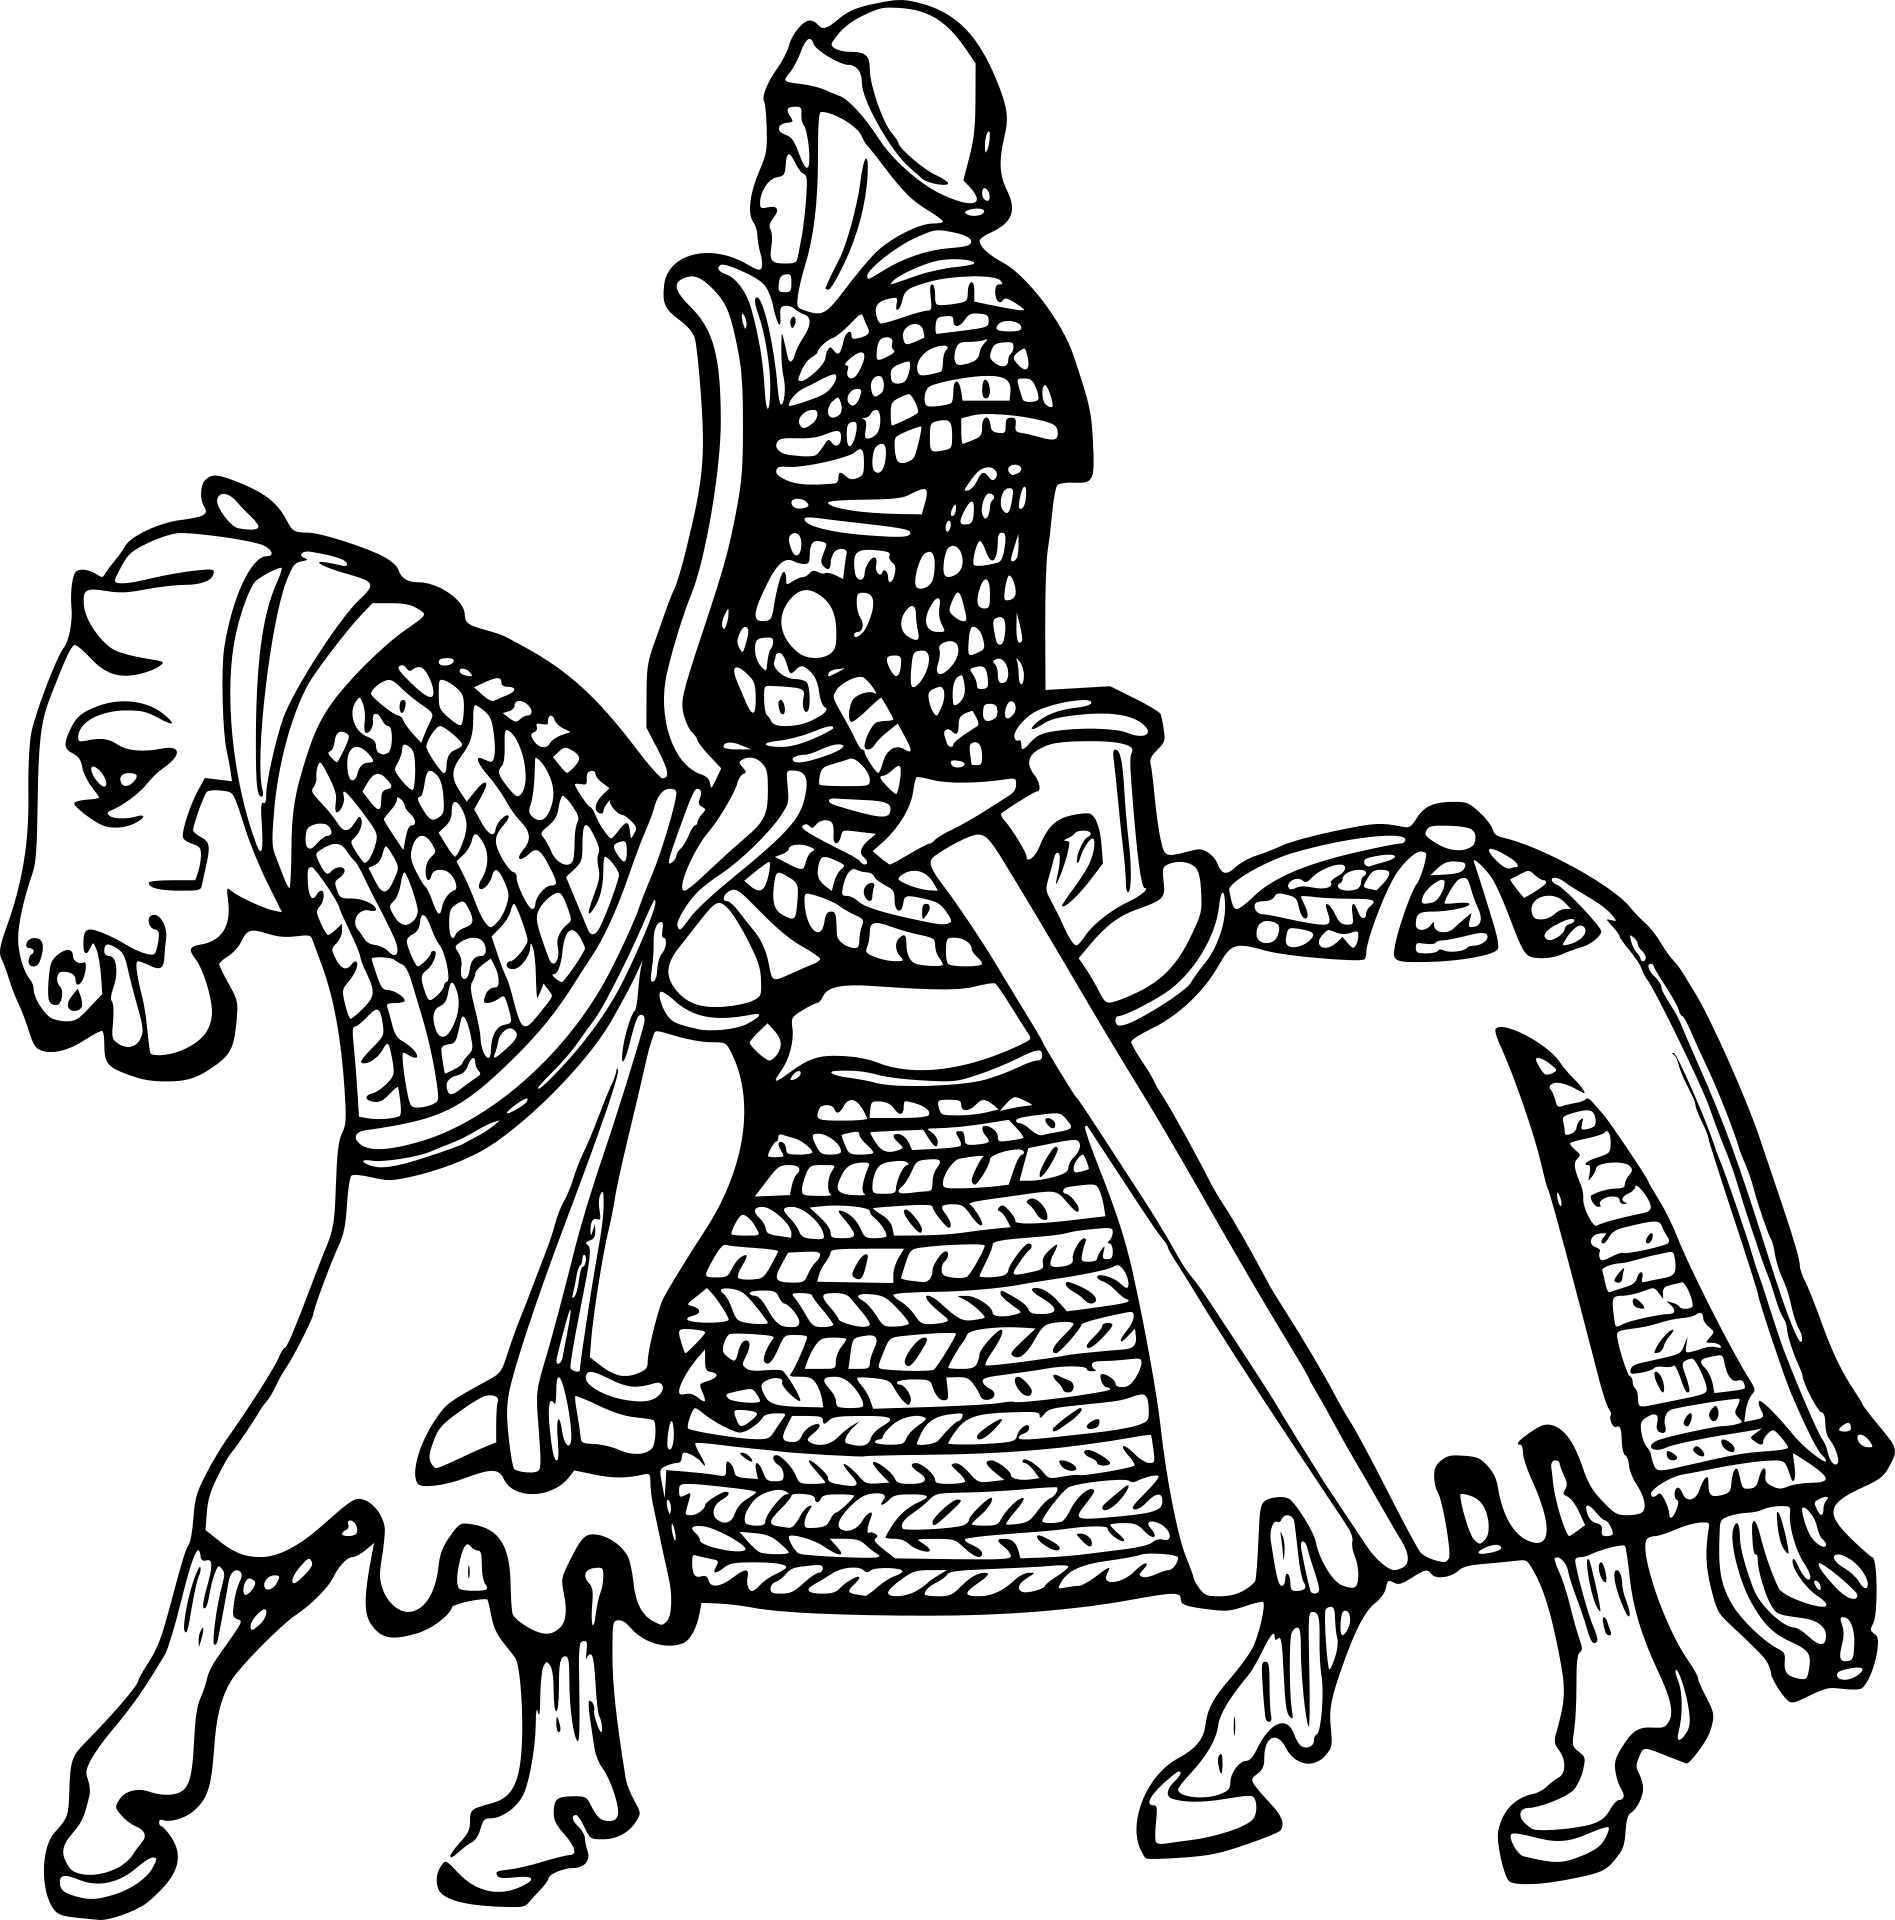 Knight Coloring Page - Love of Coloring | Knight Coloring Pages ...